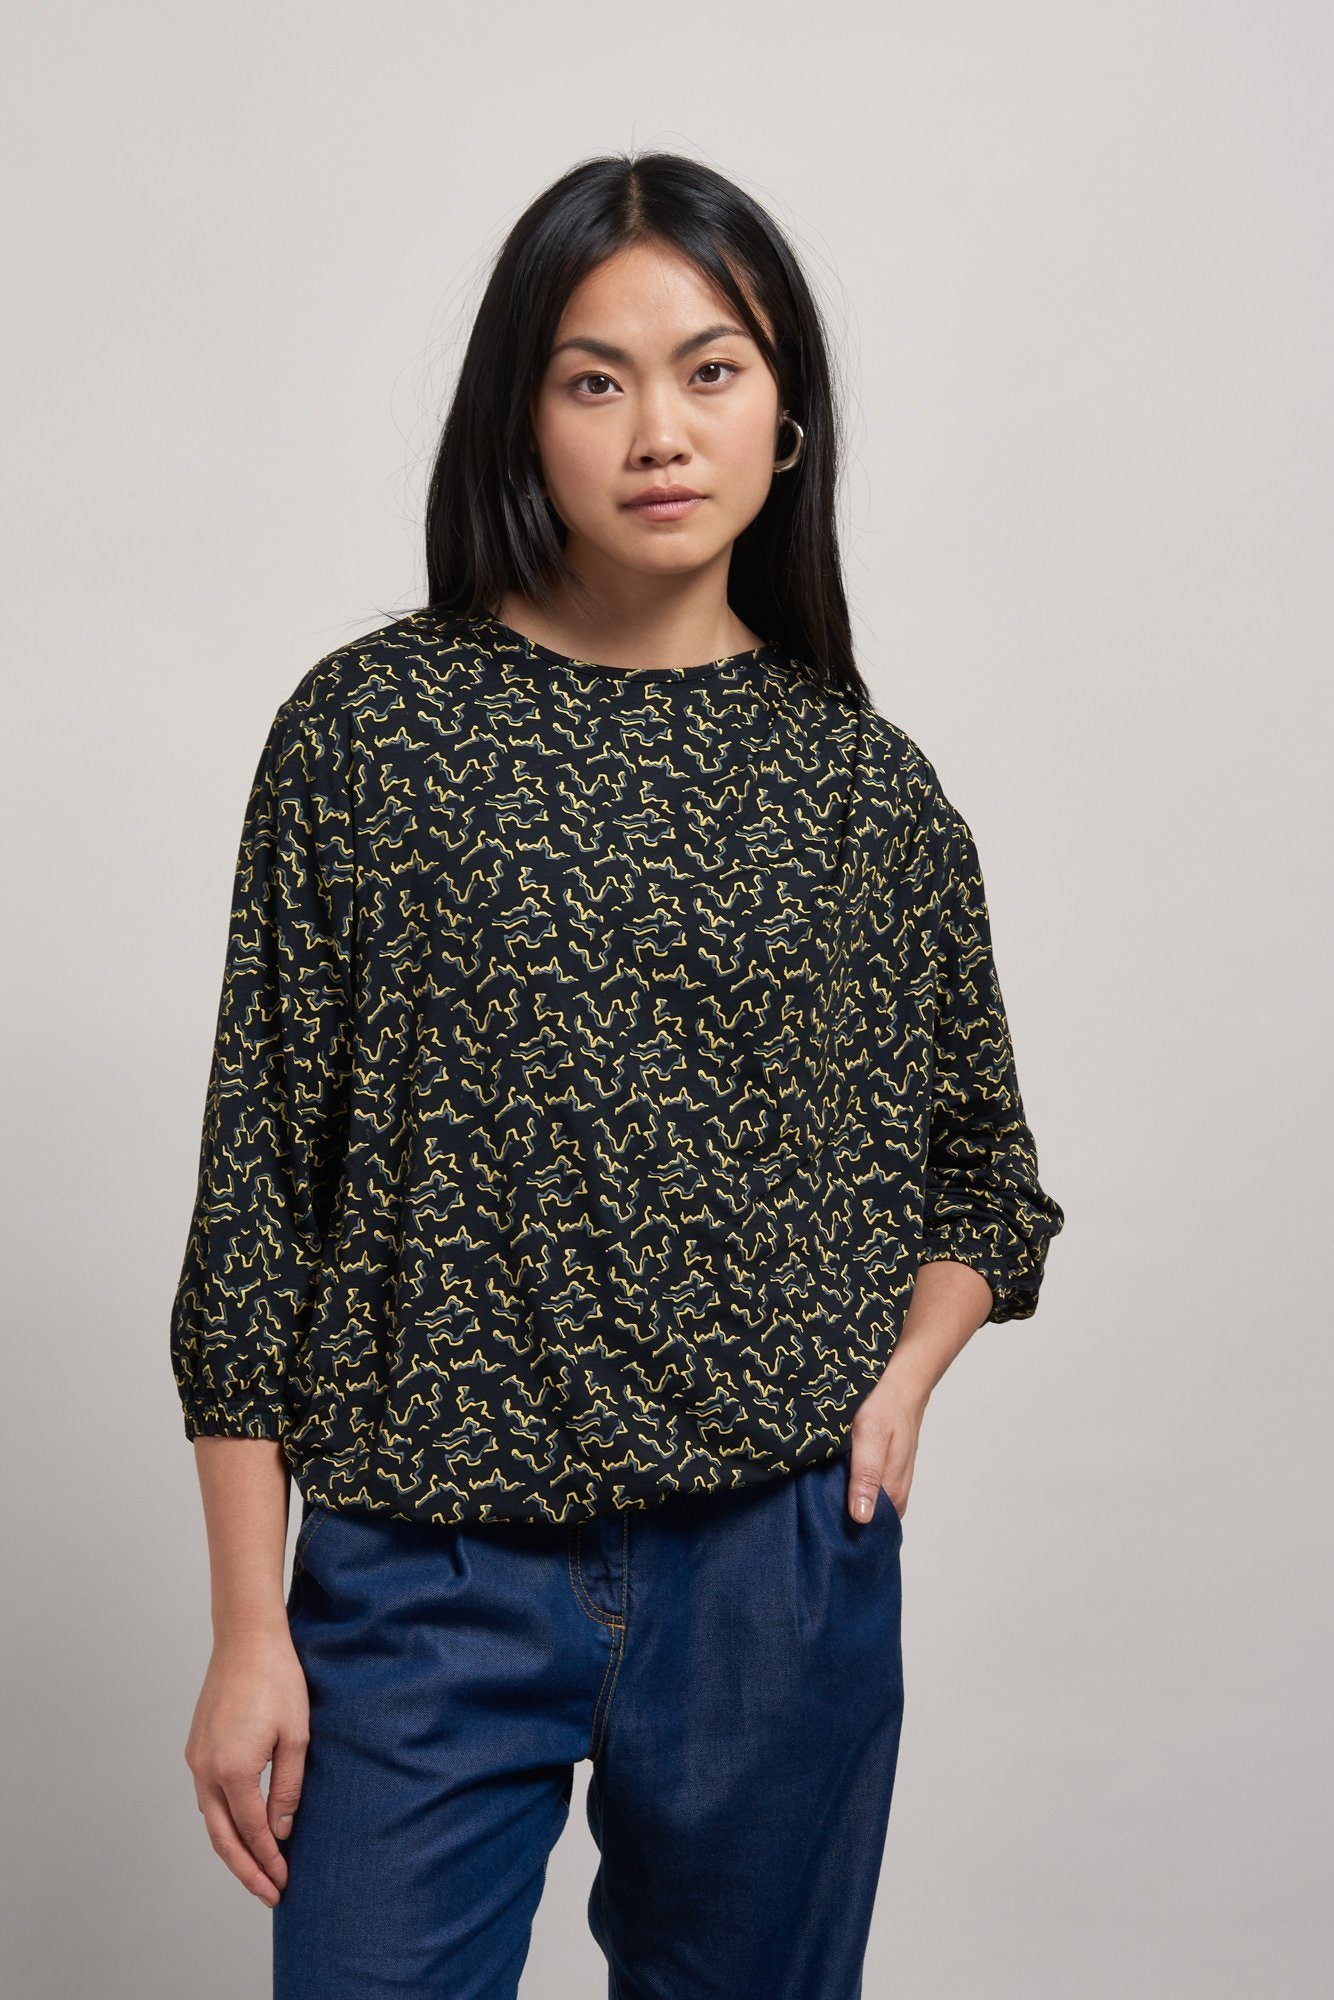 DRIFT Bamboo Drape Print Top - Komodo Fashion